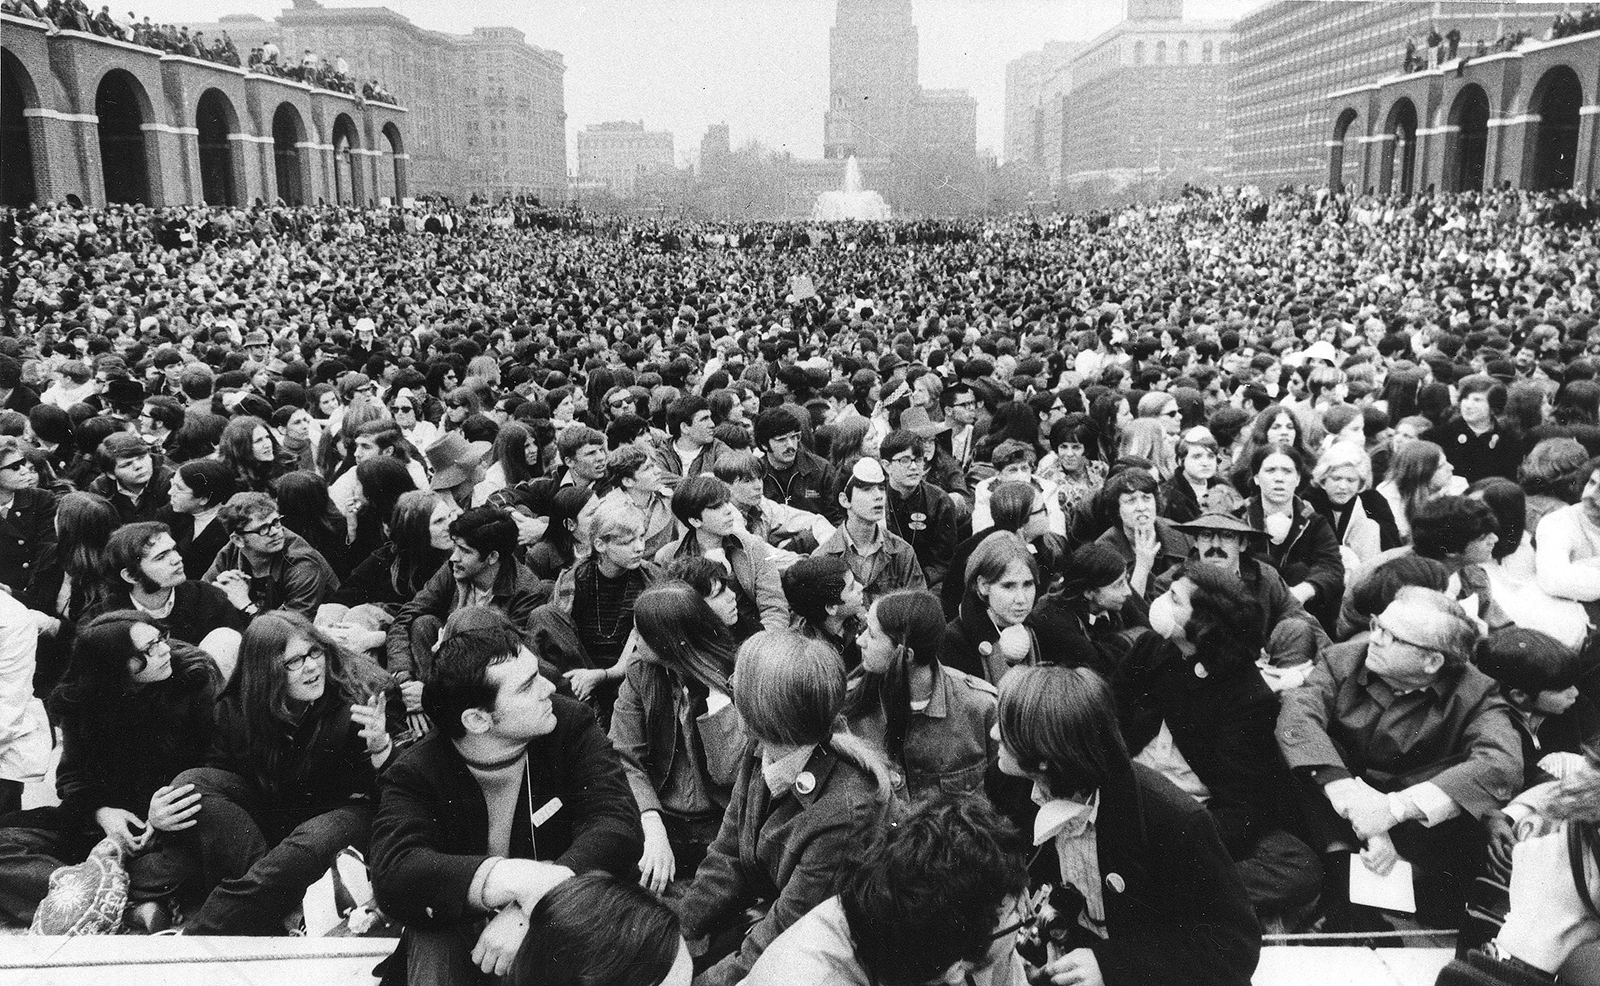 An estimated 7,000 people jam a quadrangle on Independence Mall in Philadelphia, during Earth Week activities celebrating the eve of the first Earth Day, April 22, 1970. (AP Photo)